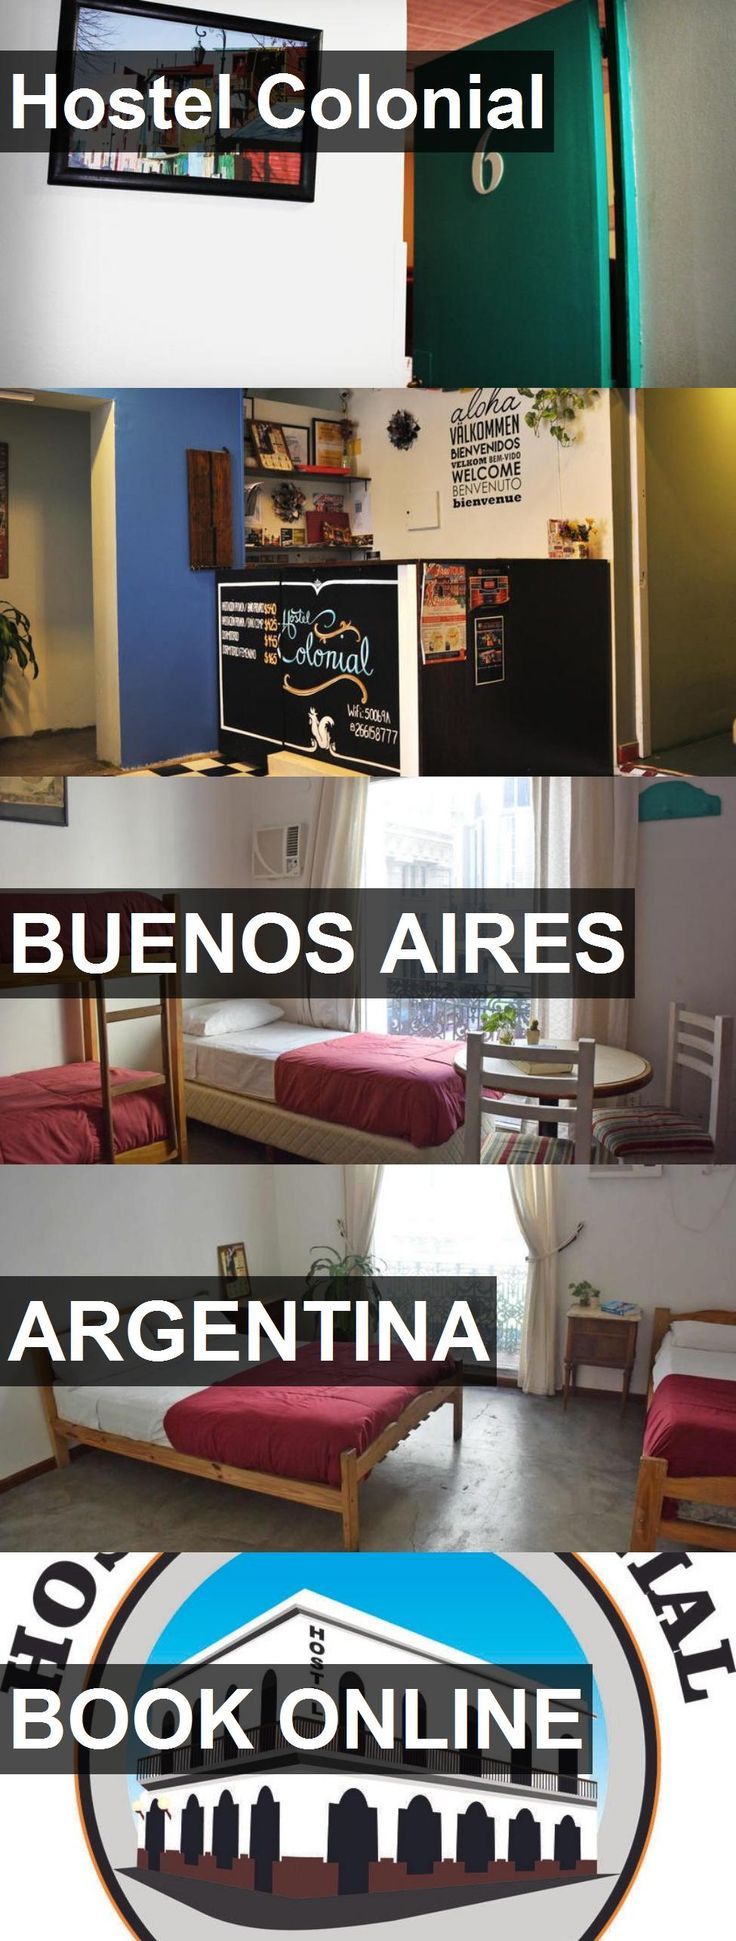 Hostel Colonial in Buenos Aires, Argentina. For more information, photos, reviews and best prices please follow the link. #Argentina #BuenosAires #travel #vacation #hostel